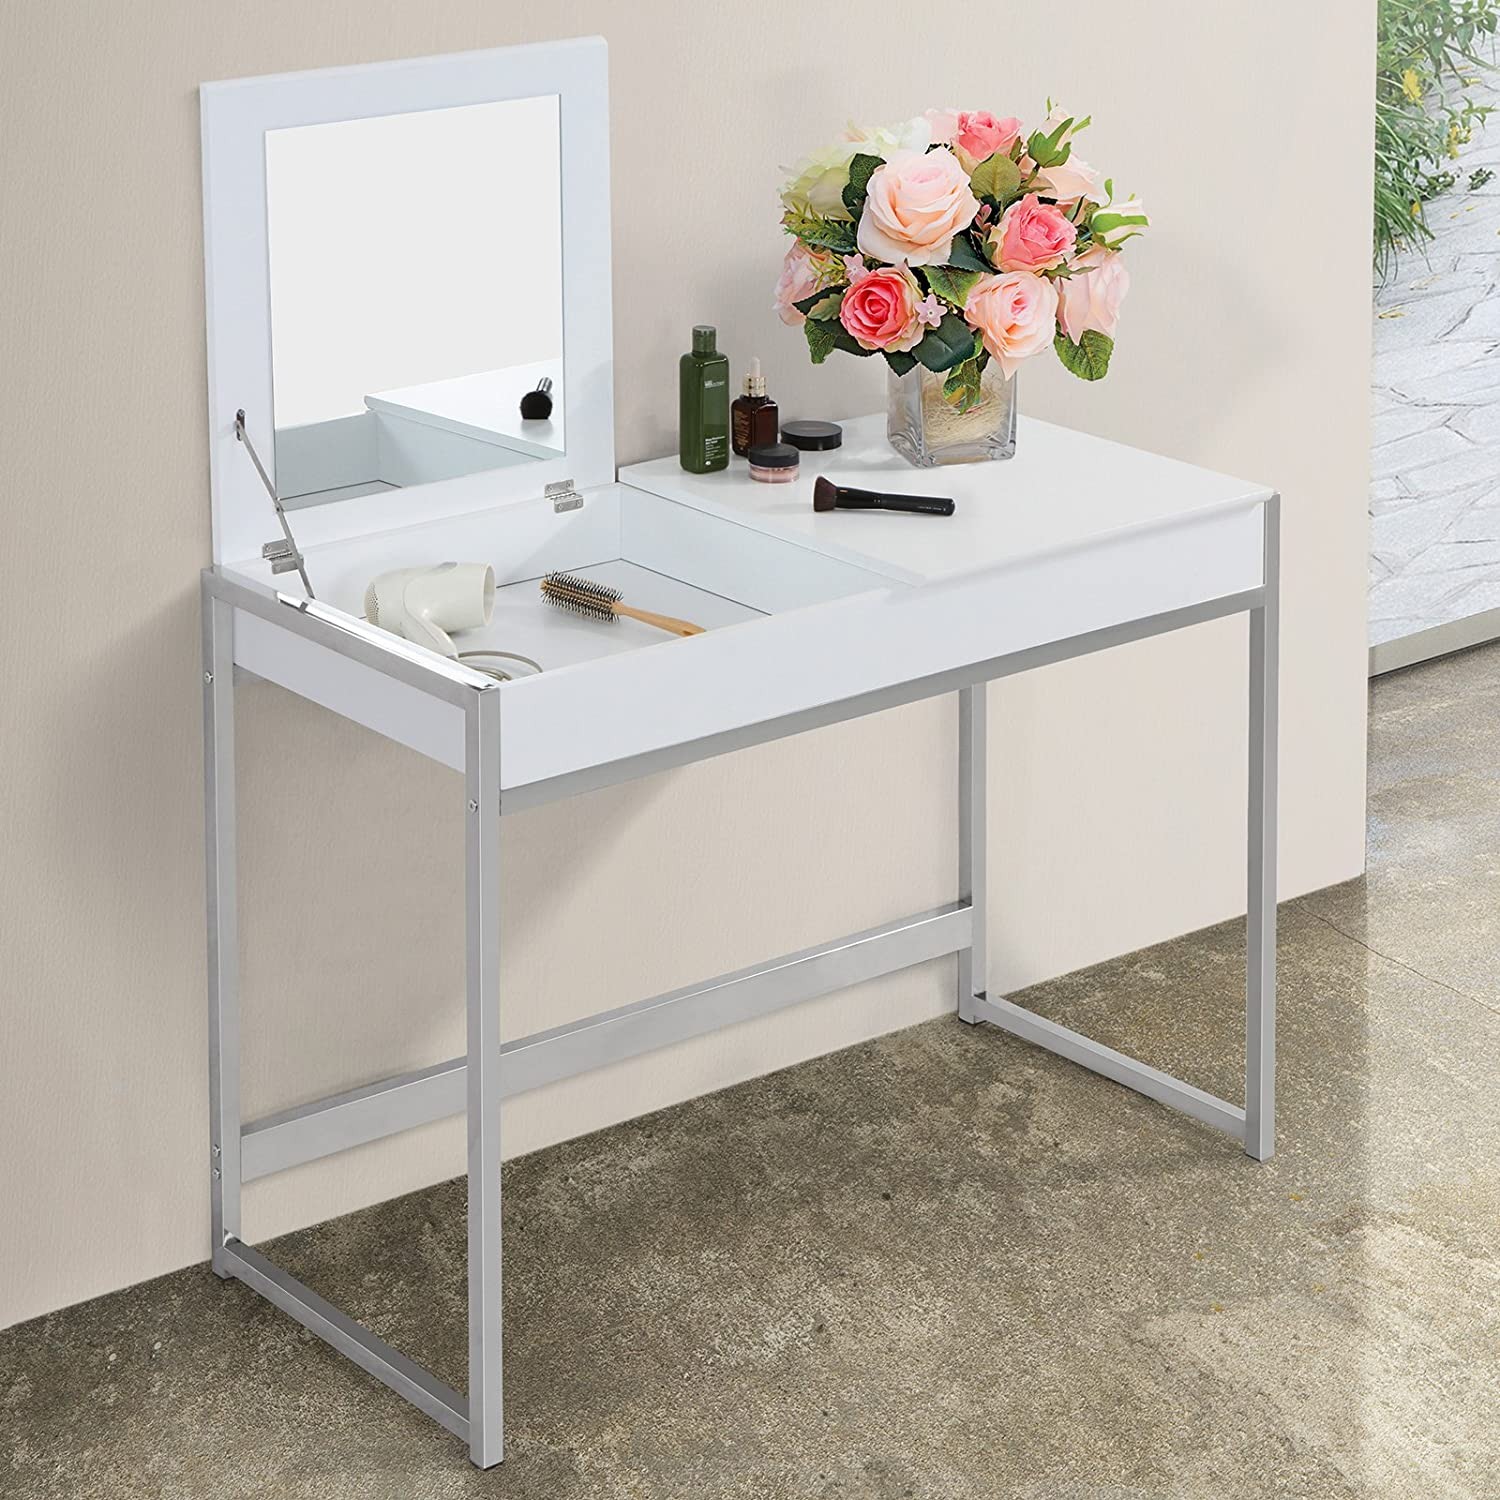 commode maquillage cool homcom coiffeuse de maquillage avec miroir et tiroirs tabouret bois. Black Bedroom Furniture Sets. Home Design Ideas